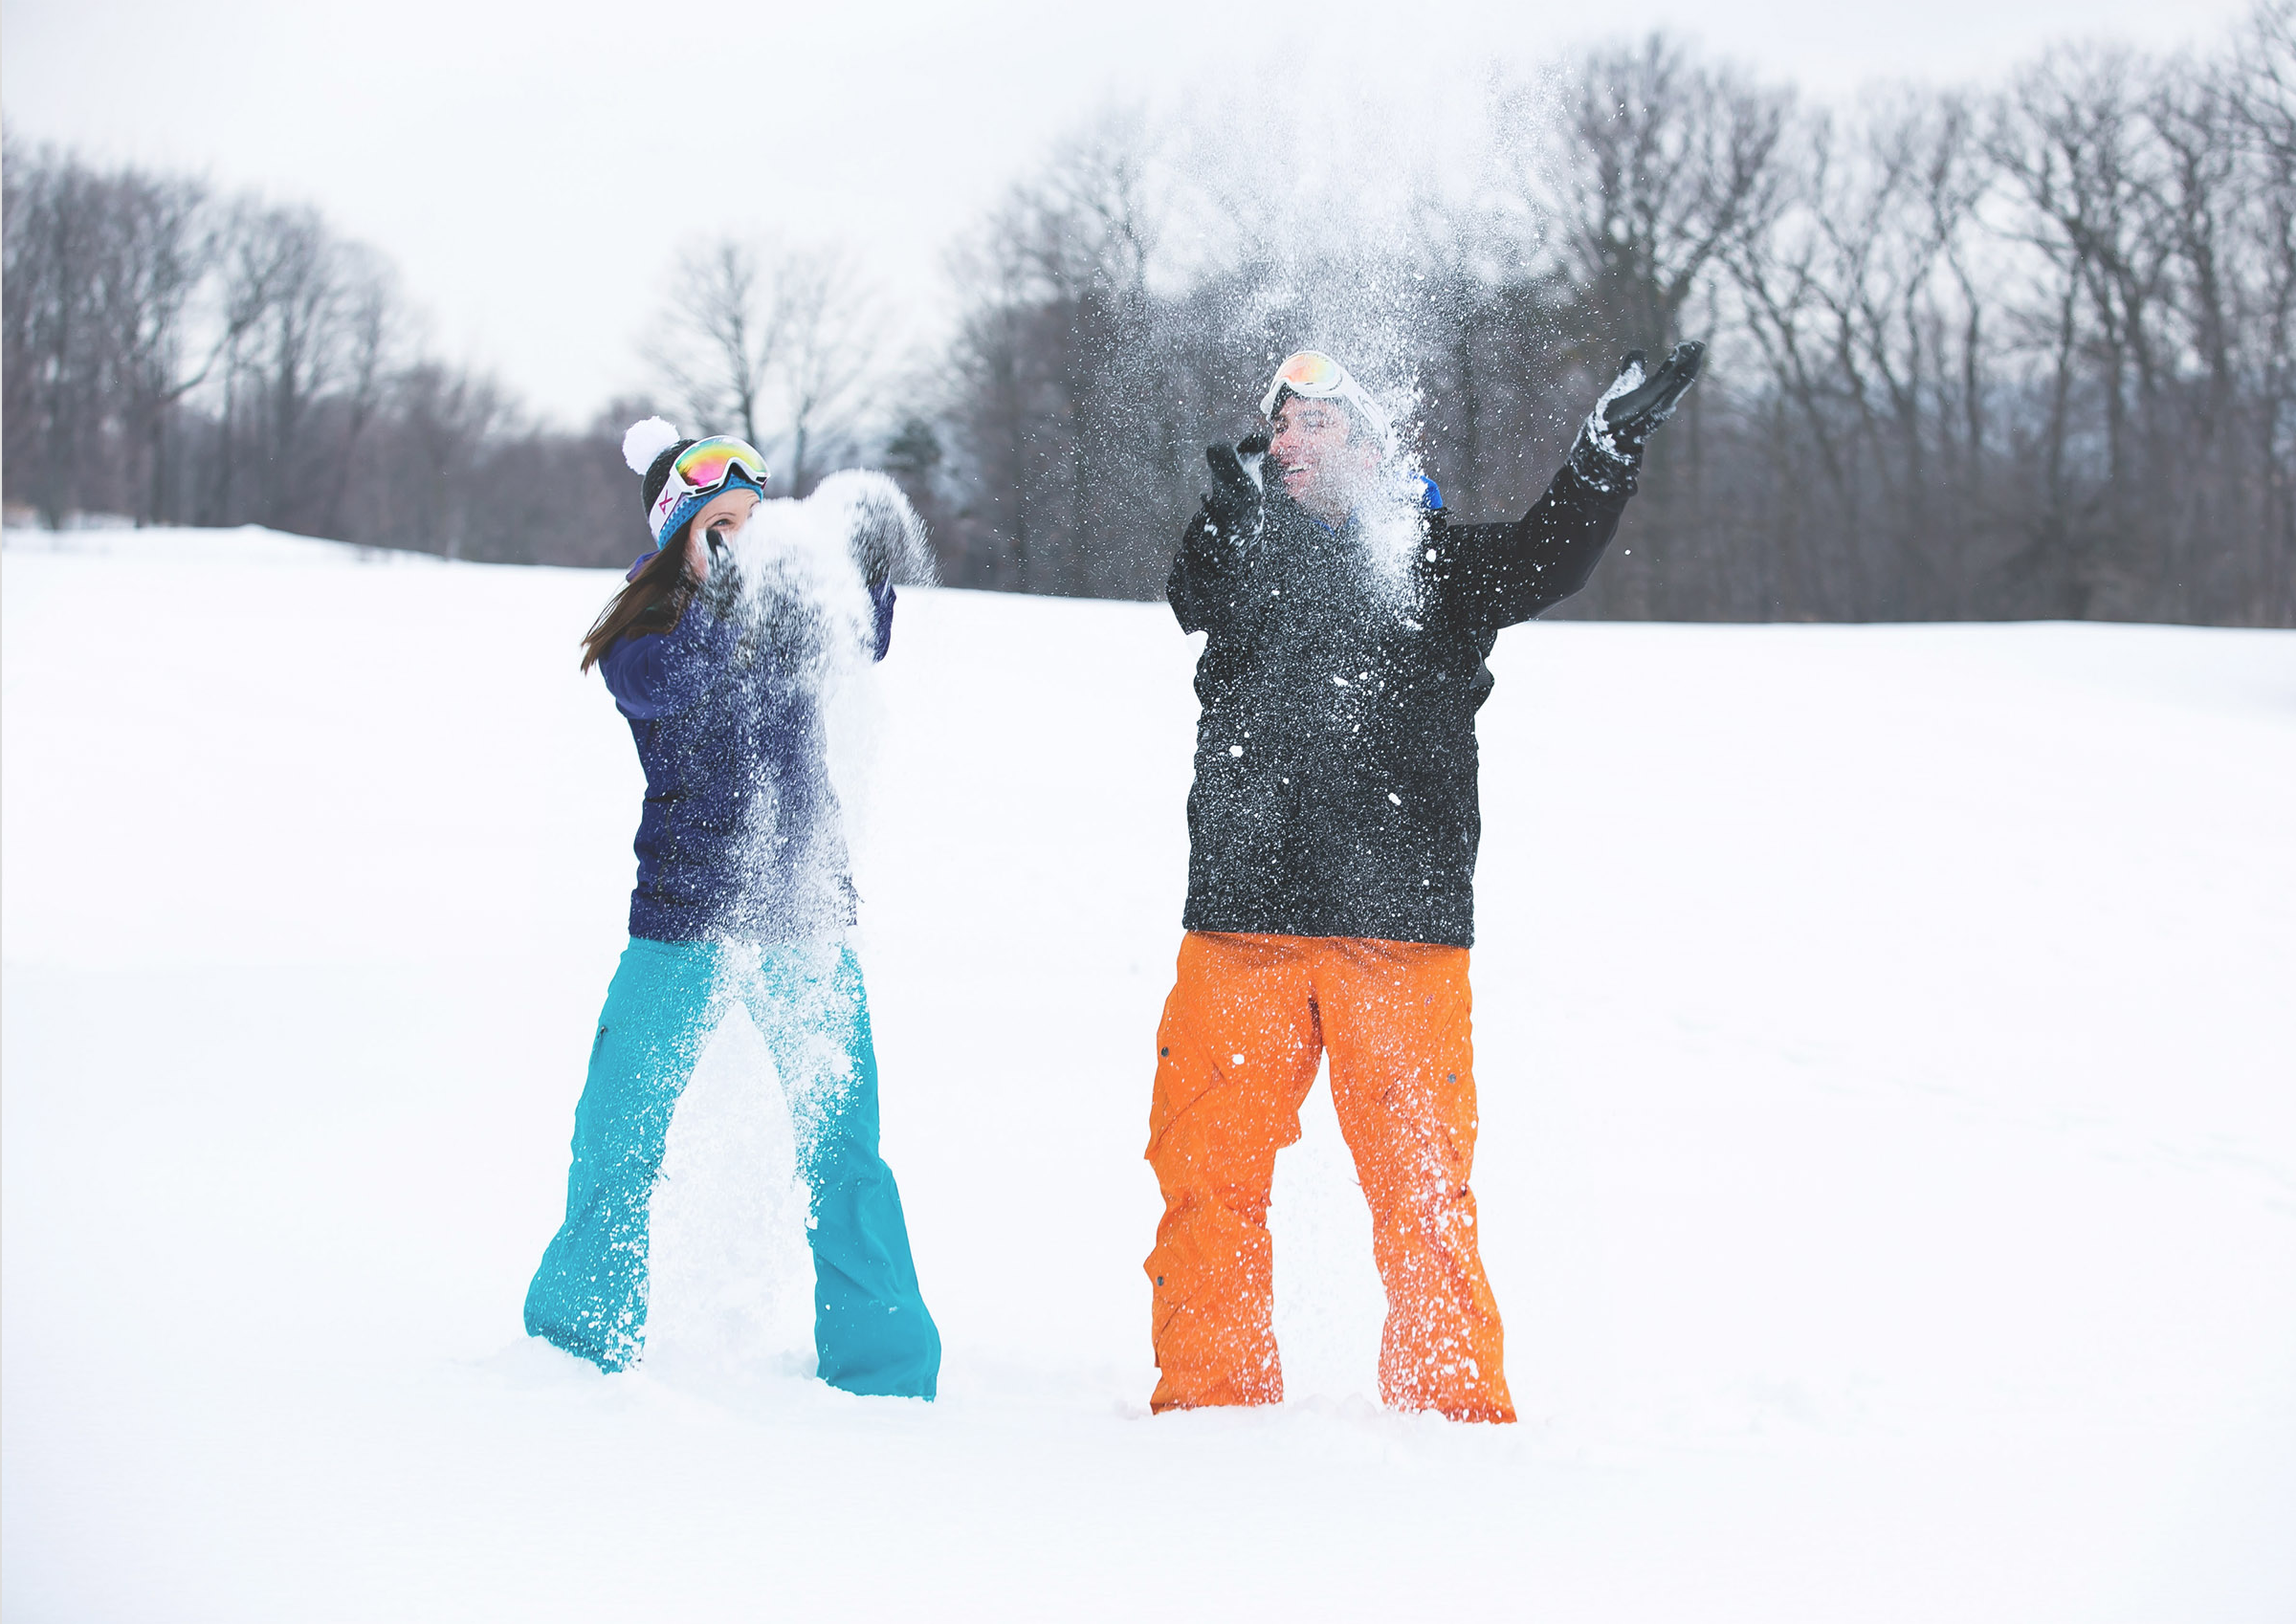 Engagement-Photos-Hamilton-Niagara-Toronto-Burlington-Oakville-Photographer-Engaged-Ring-Photography-Snowboarding-Winter-Moments-by-Lauren-Image-14.png